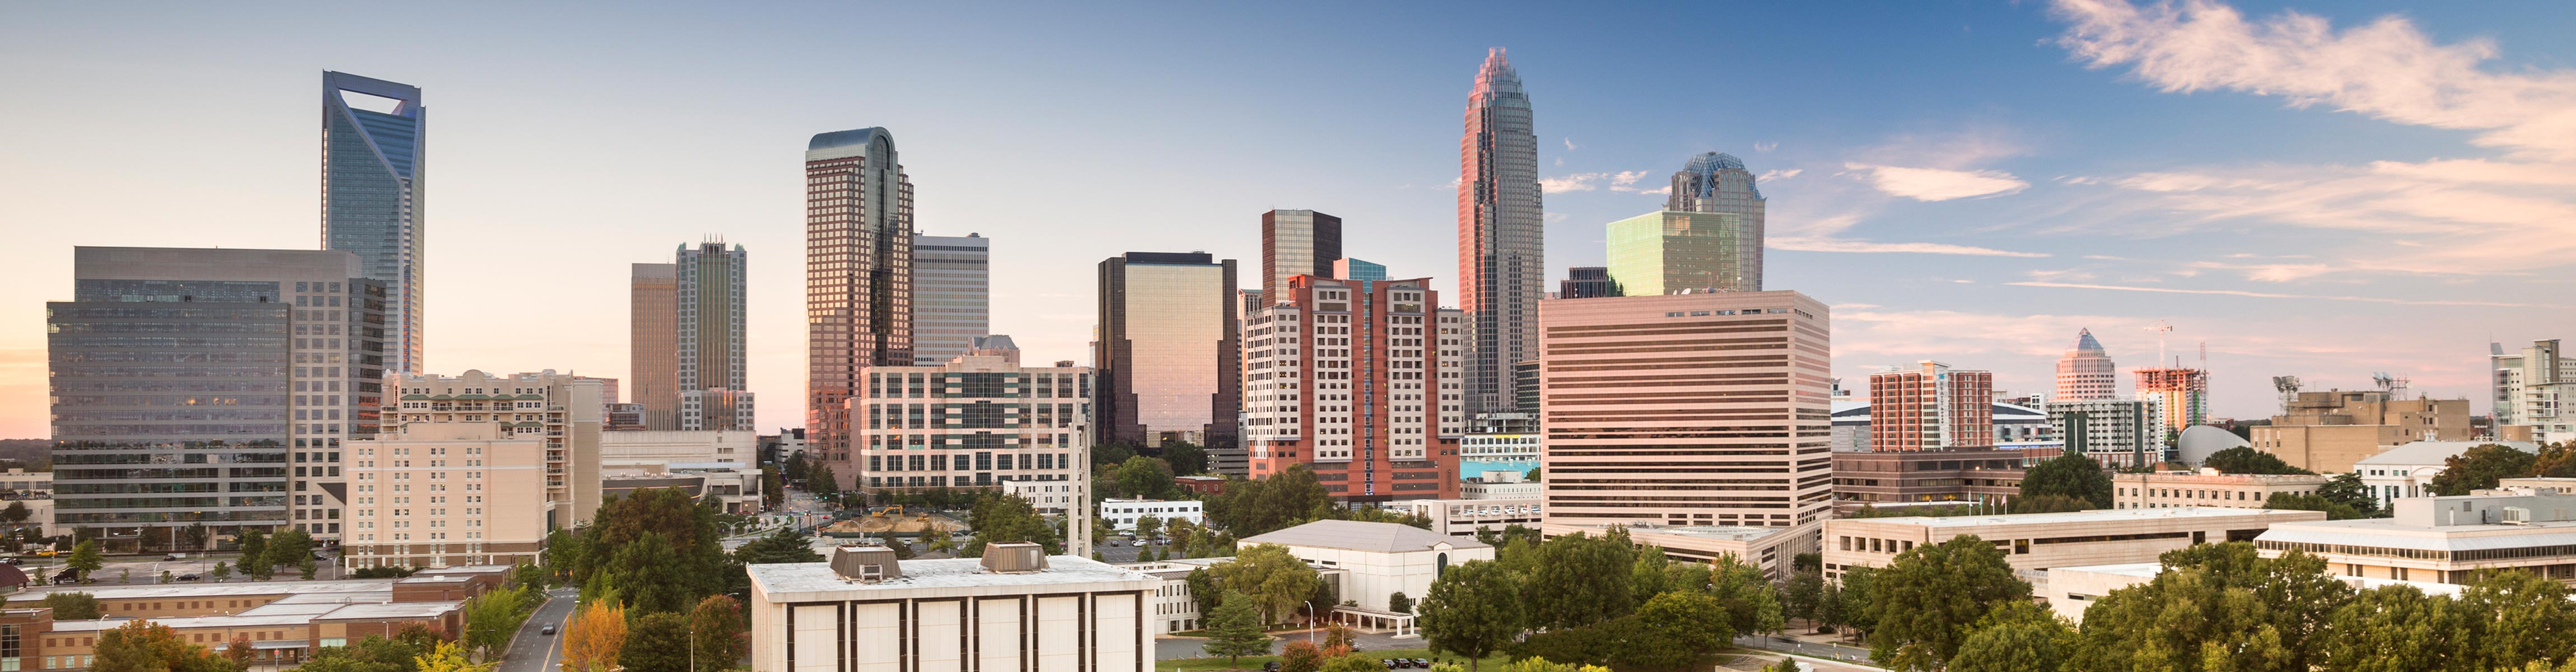 Image of Charlotte, North Carolina's Skyline